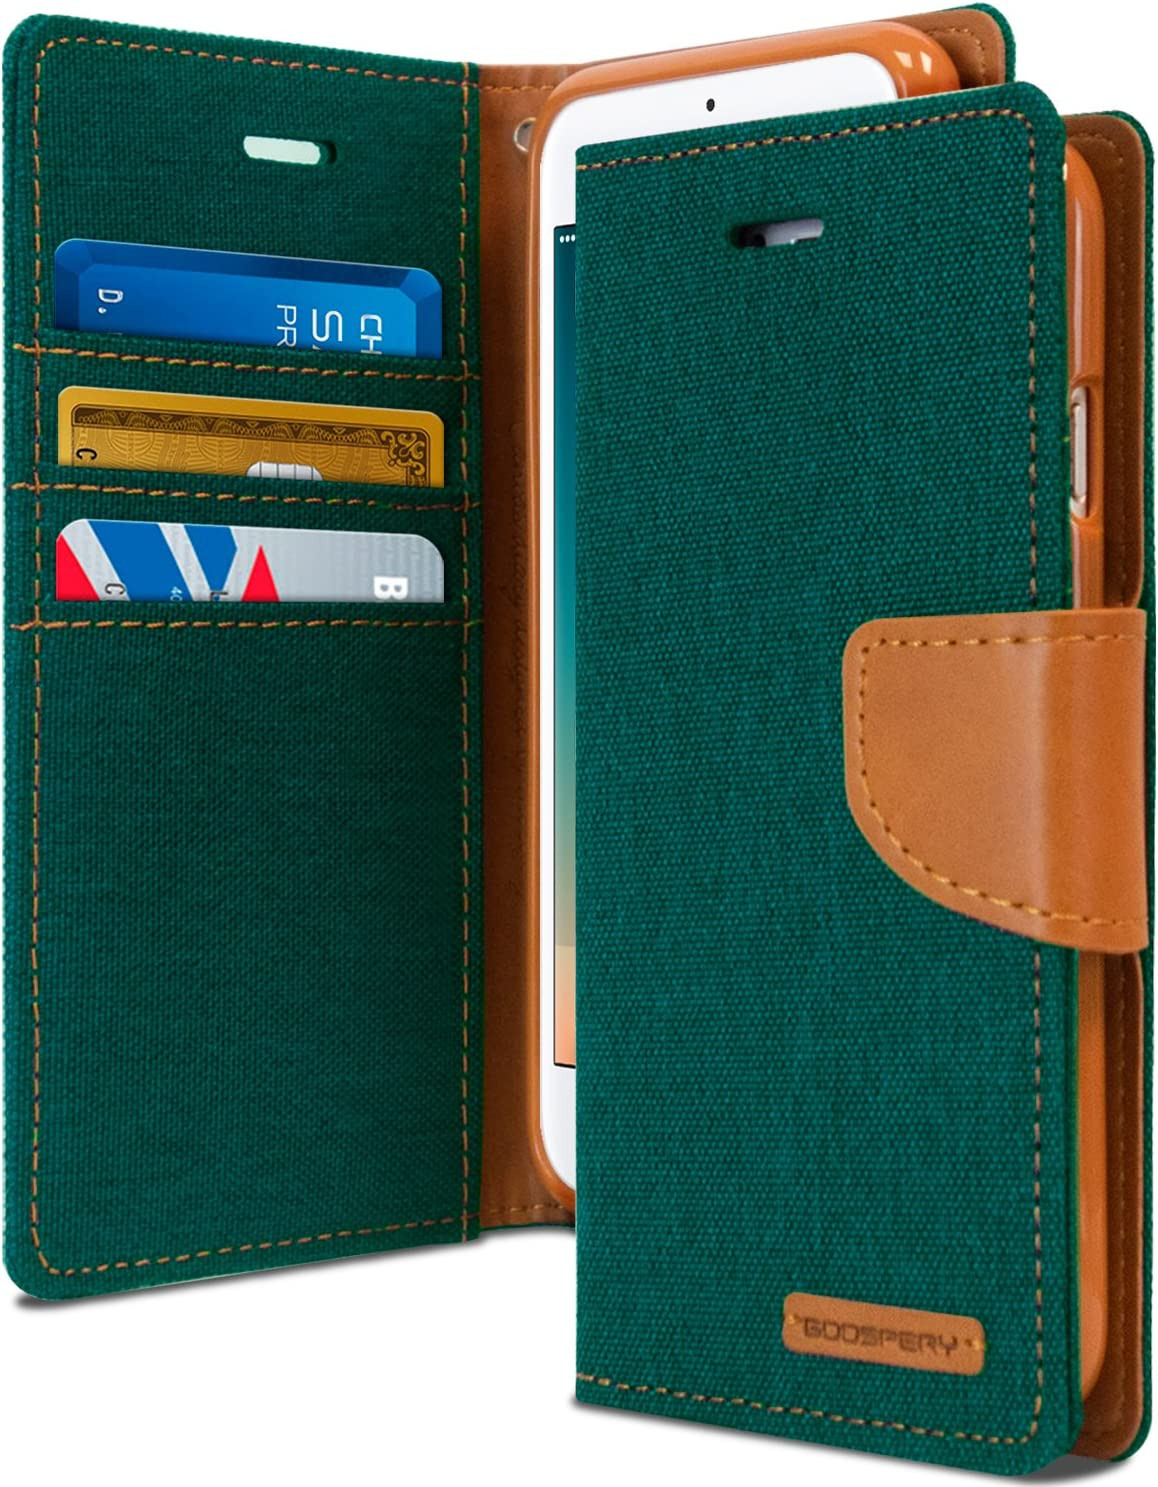 Goospery Canvas Wallet for Apple iPhone 8 Plus Case (2017) iPhone 7 Plus Case (2016) Denim Stand Flip Cover (Green) IP7P-CAN-GRN